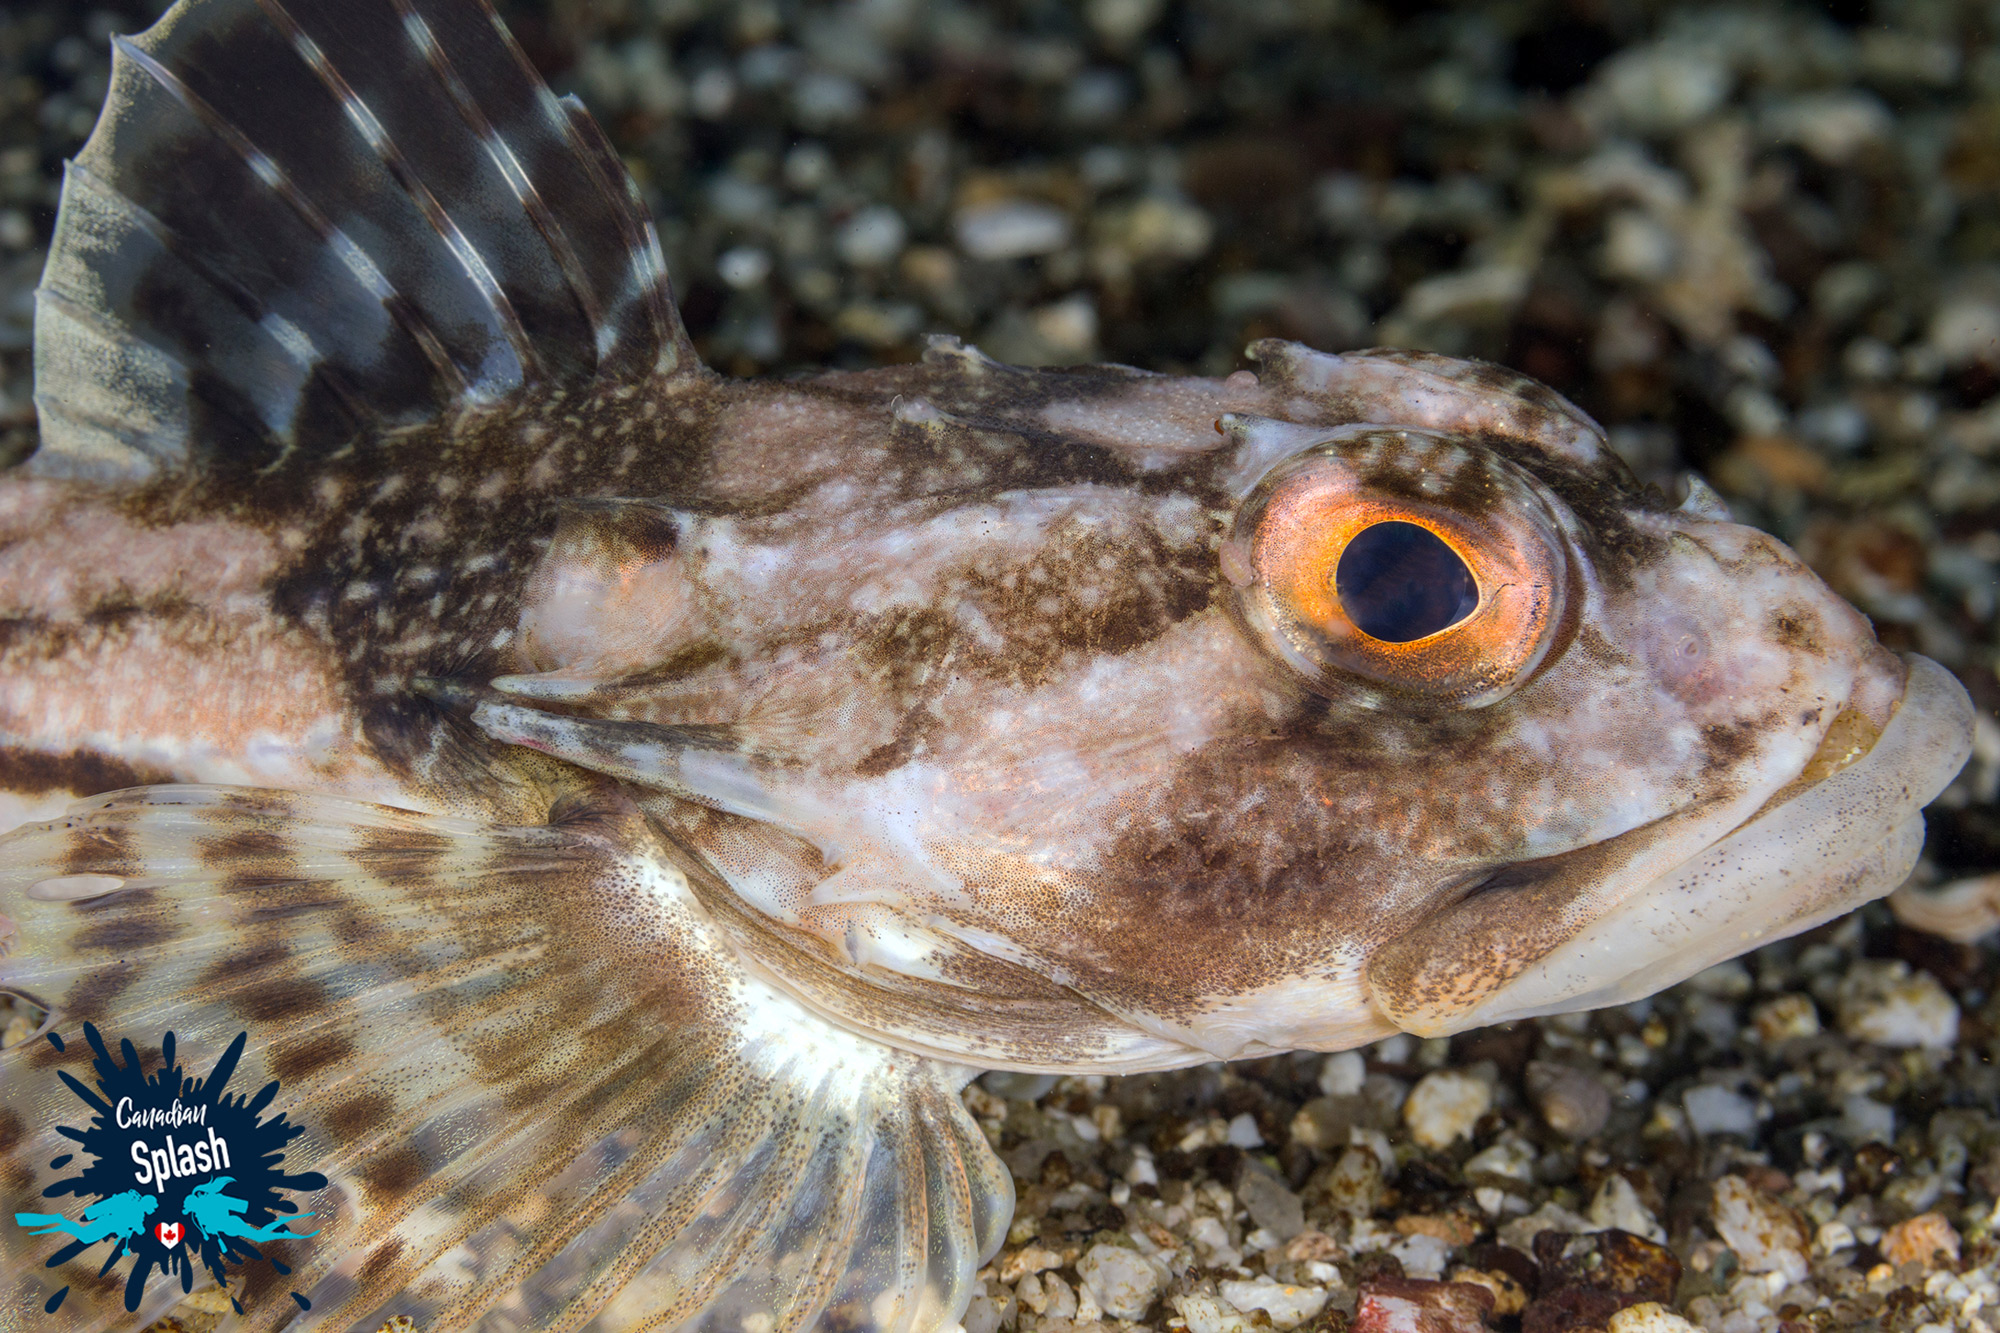 Fish life beautifully camouflaged in a shingle reef. Photo: Canadian Splash